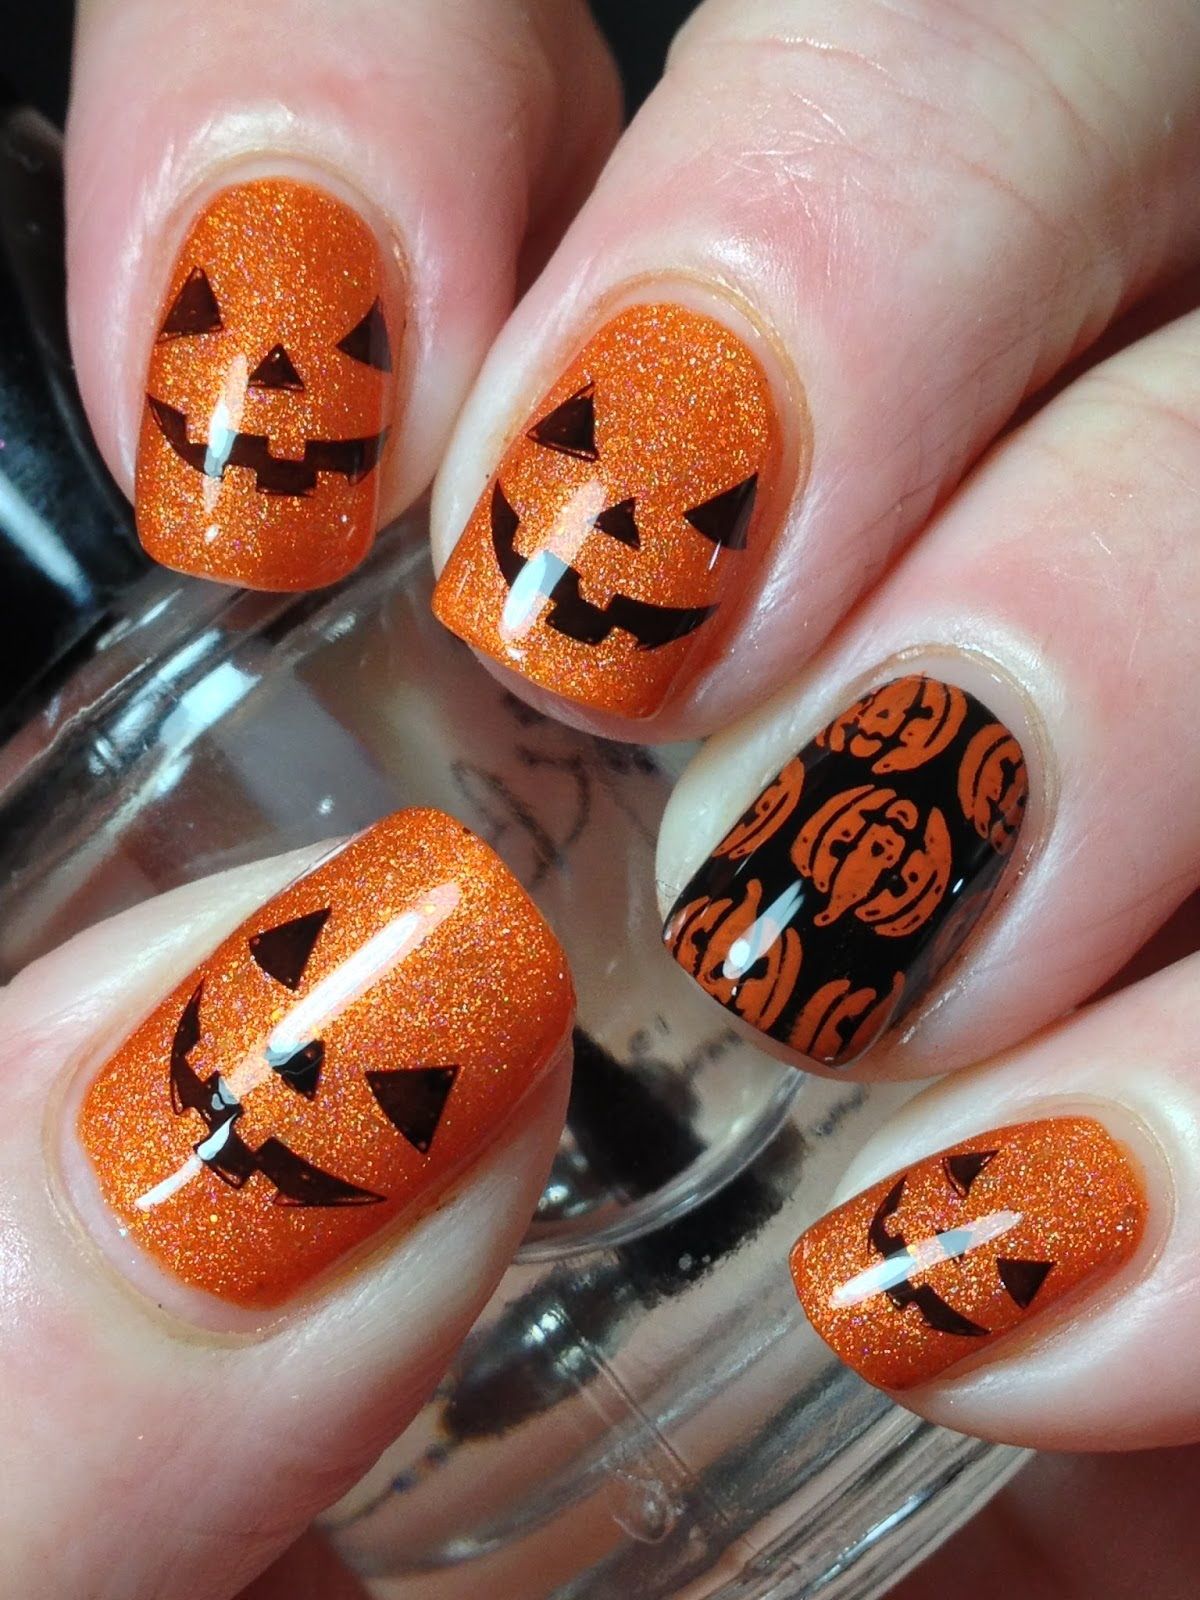 Canadian Nail Fanatic: Cute Halloween Pumpkins!